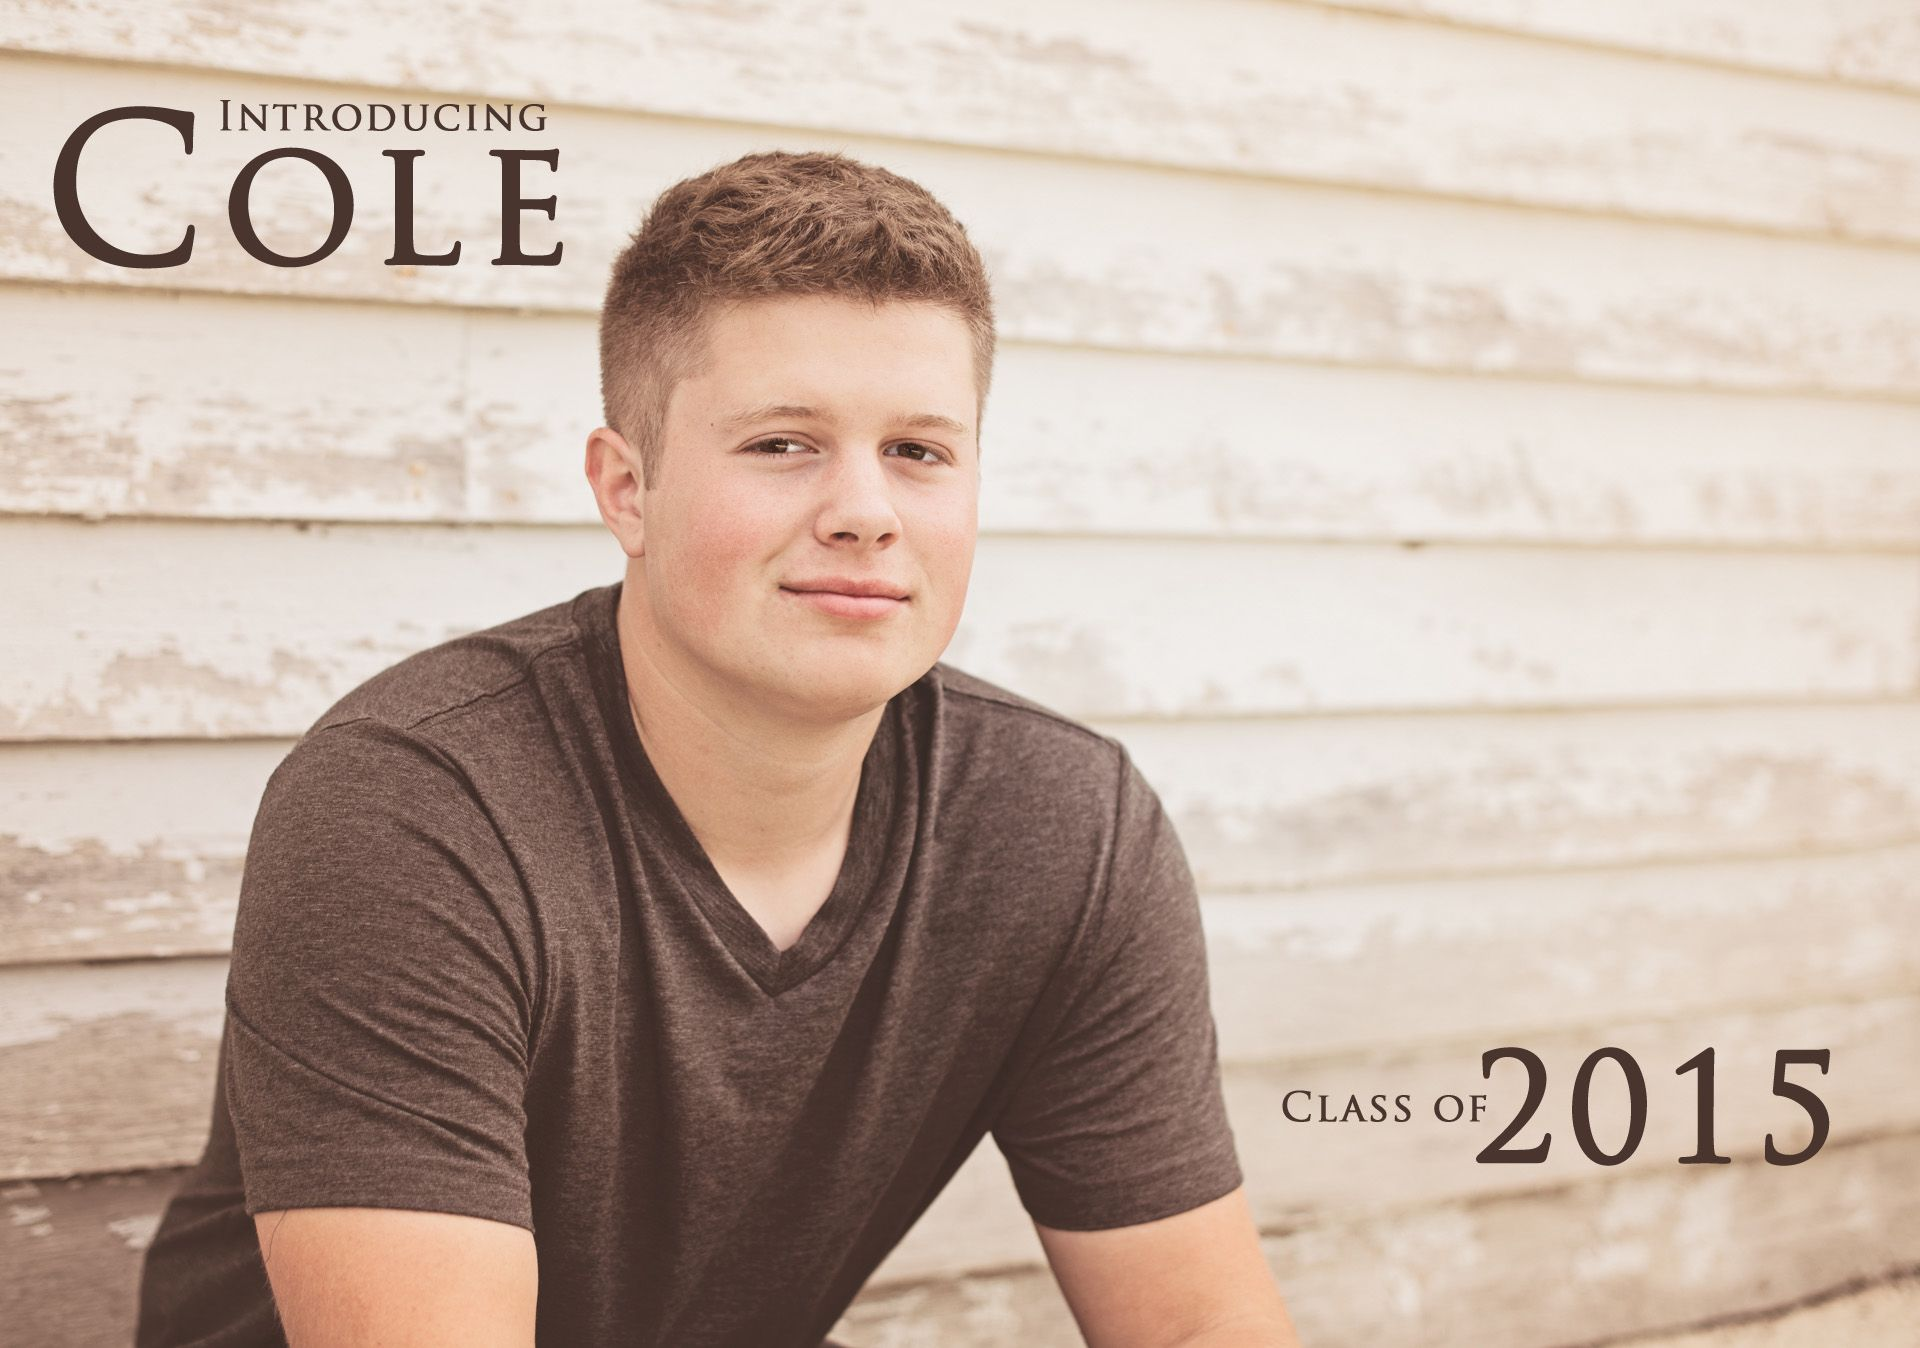 Introducing Cole   Class of 2015 Cole is up on the blog: http://petersoncreativephoto.com/?p=4675 #classof2015 #seniorpictures #minnesota